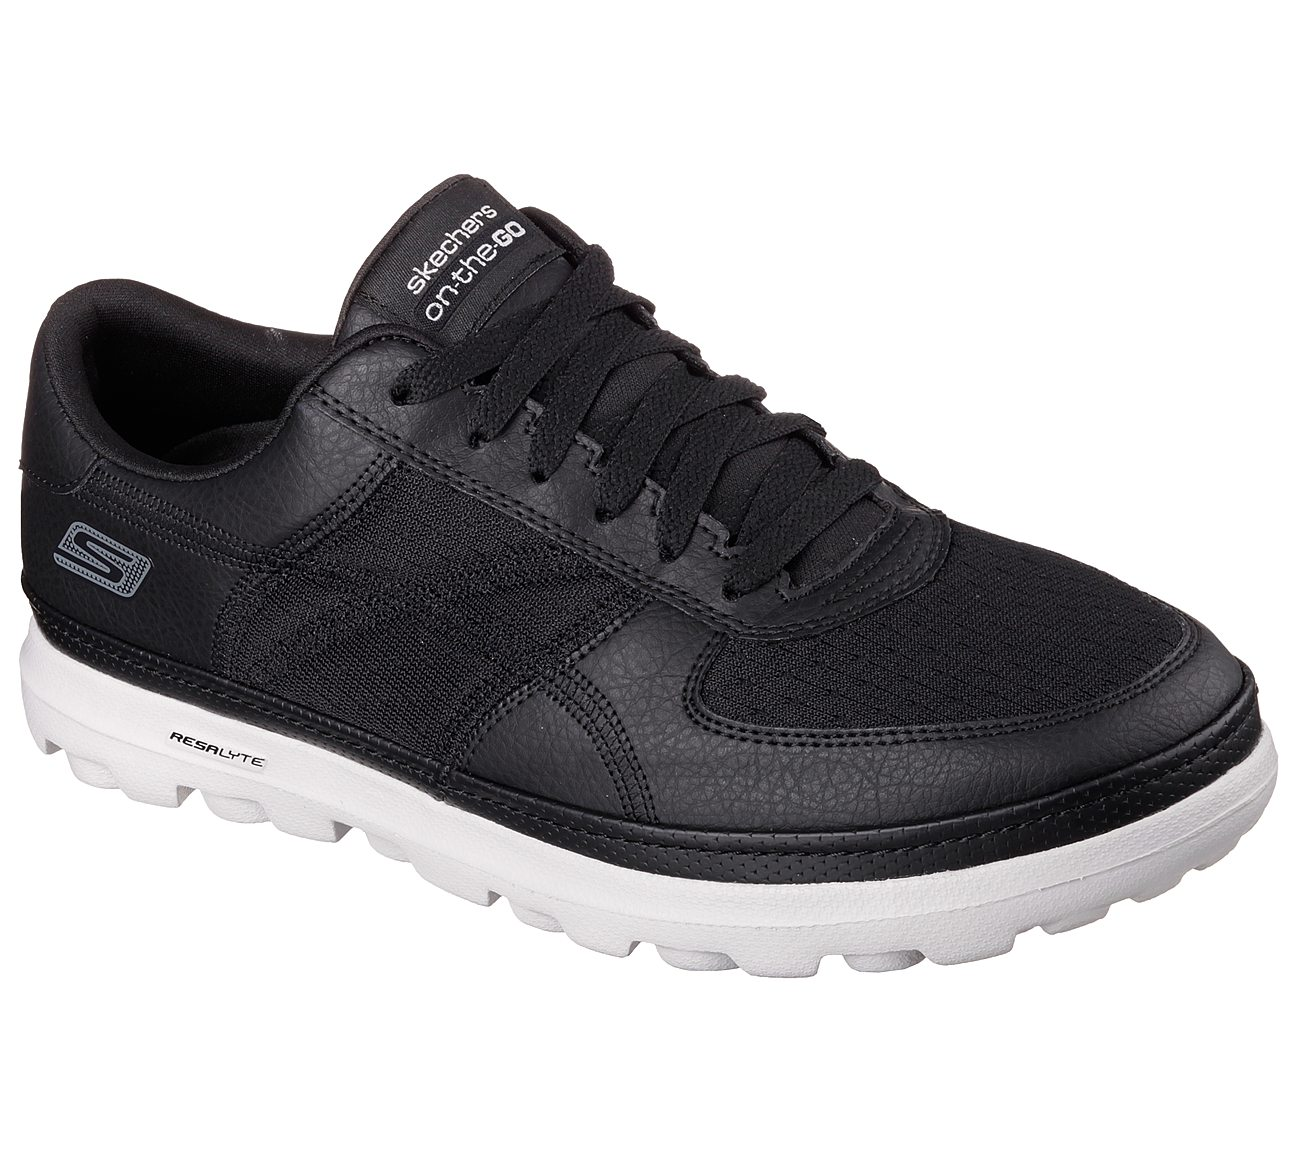 skechers resalyte